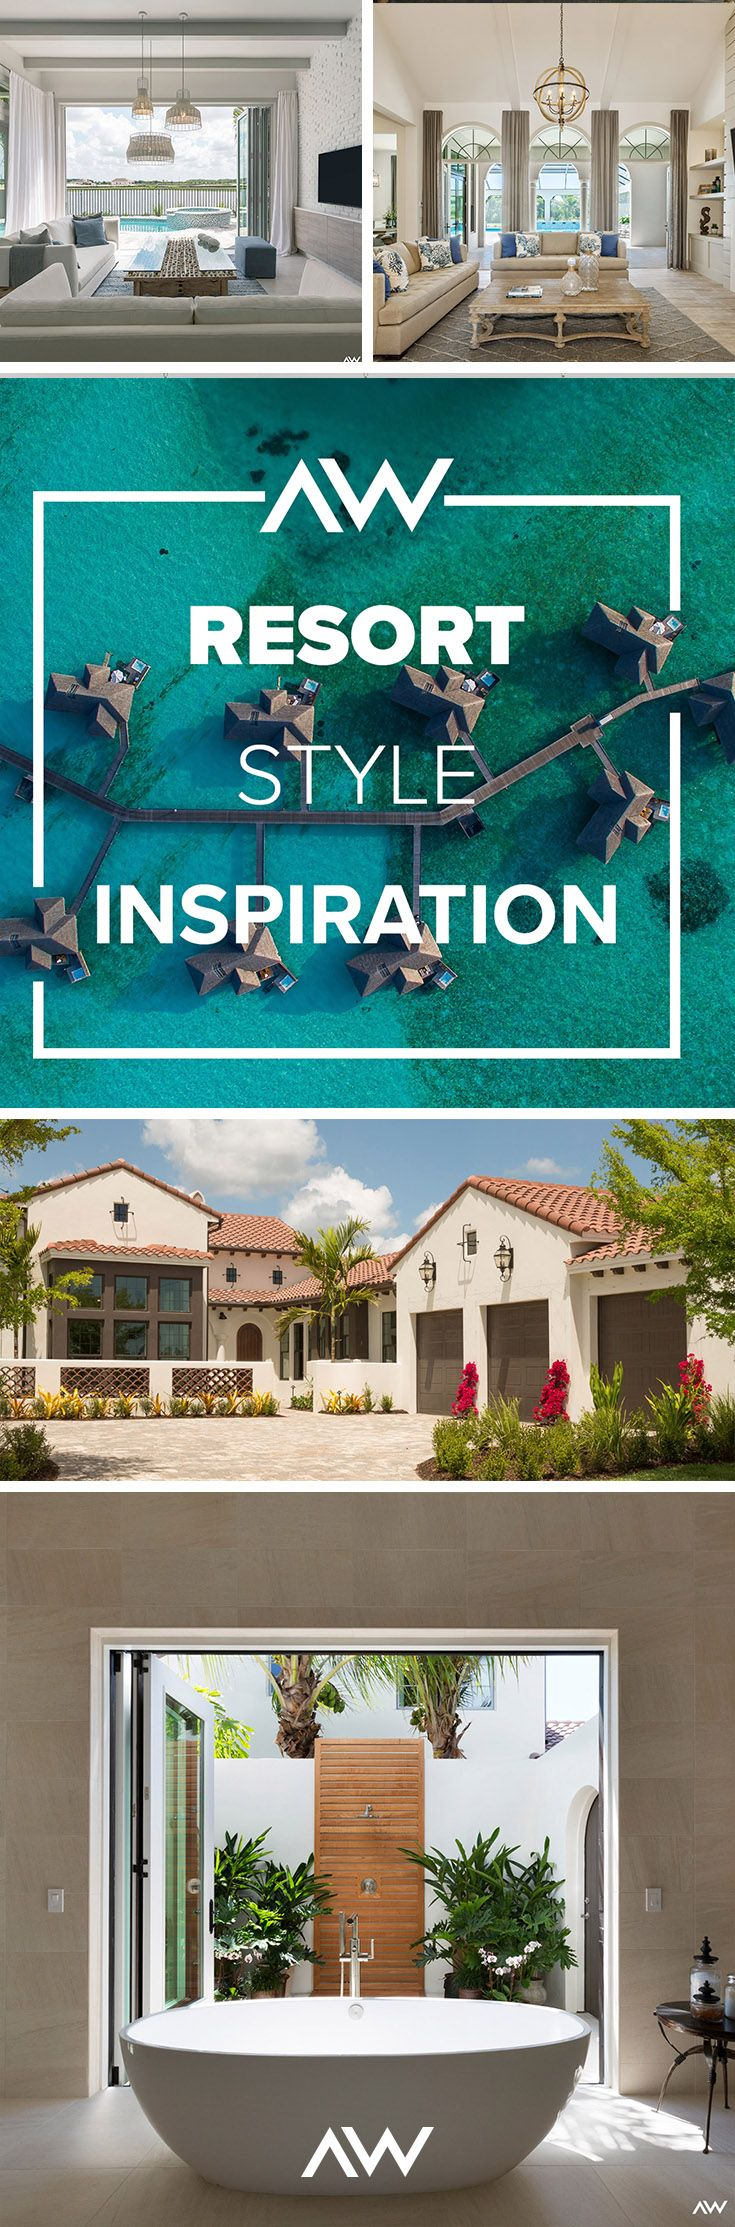 23 best Inspiring Spaces images on Pinterest | Infographic ...